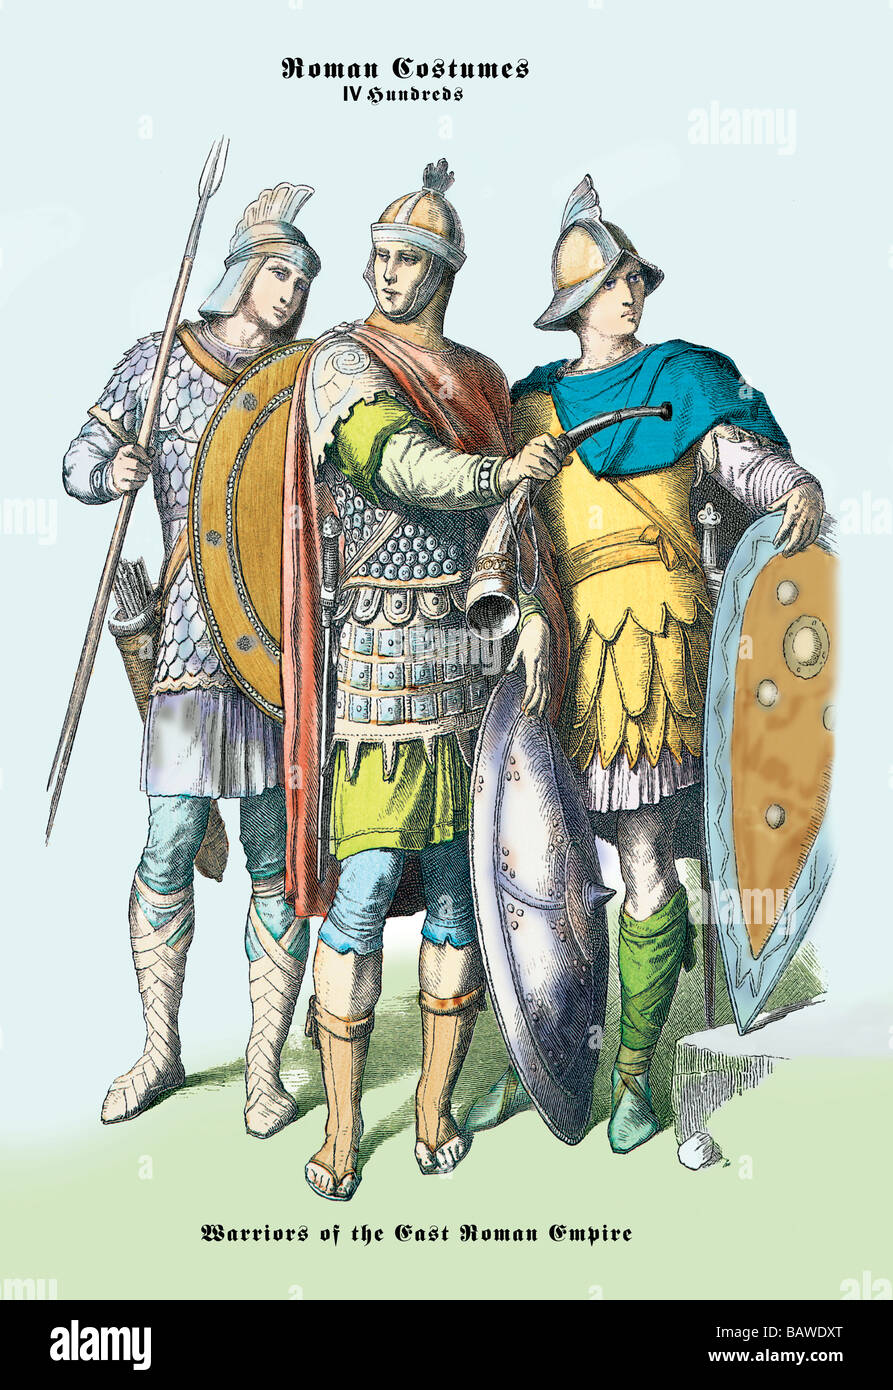 Roman Costumes Warriors of the West Roman Empire  sc 1 st  Alamy & Roman Costumes: Warriors of the West Roman Empire Stock Photo ...